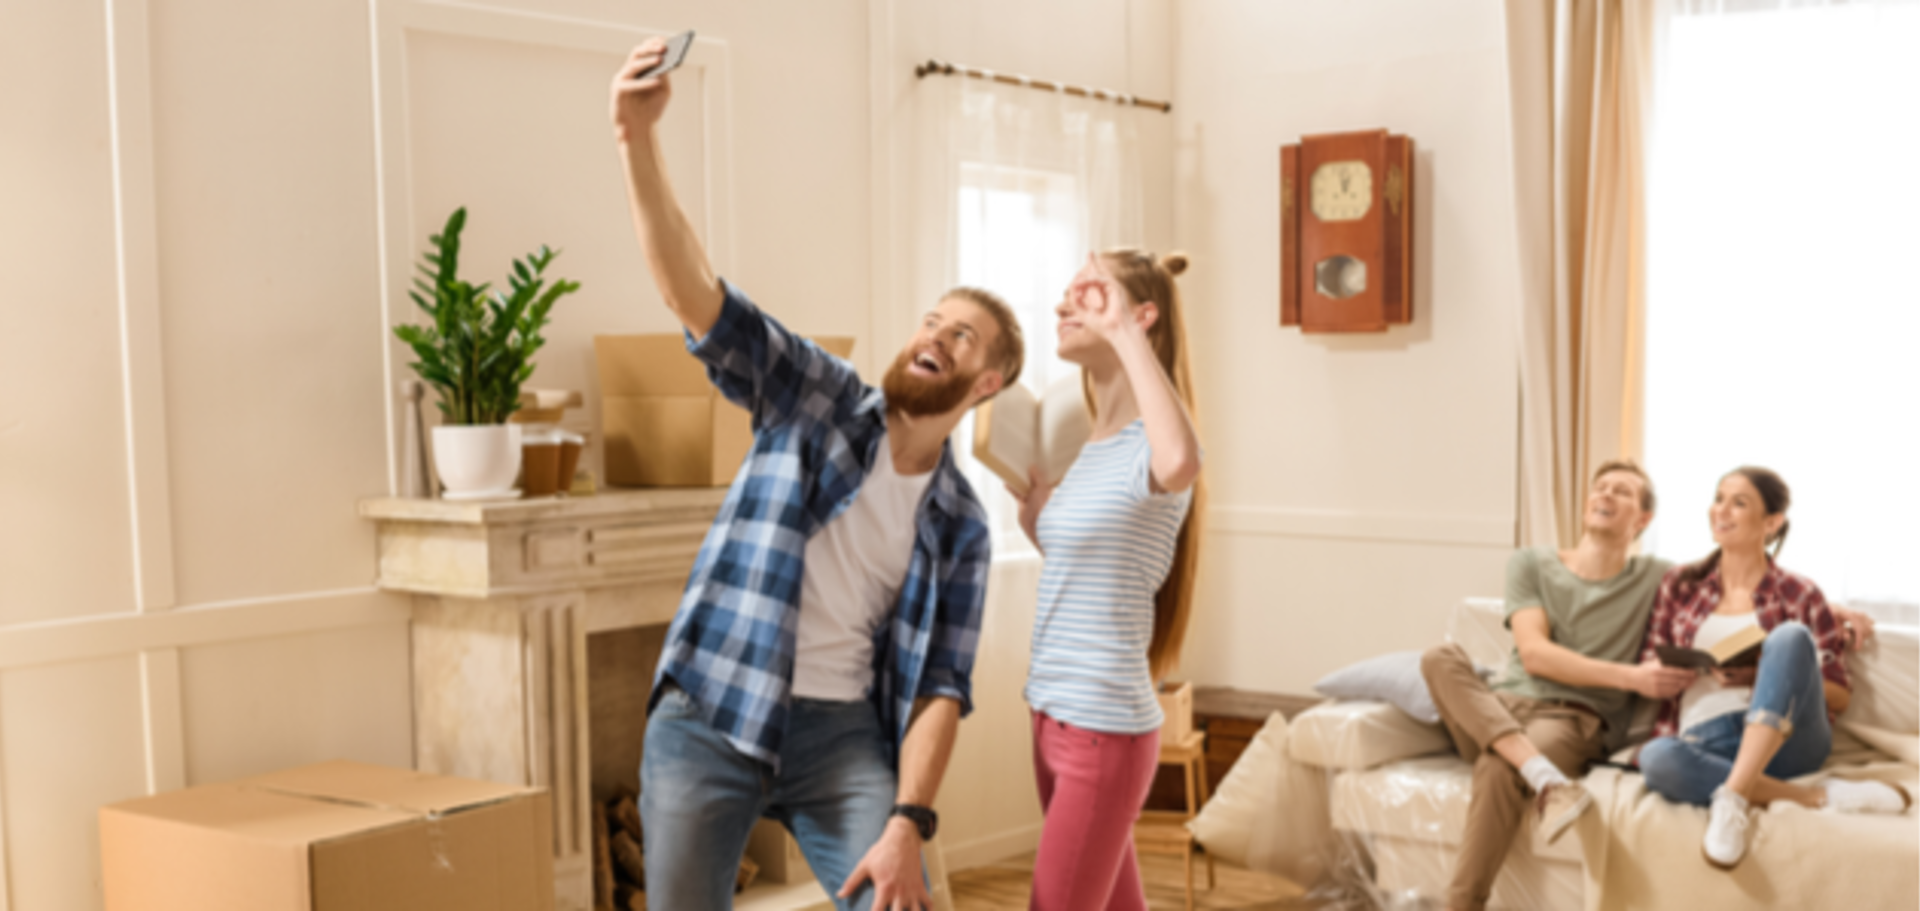 Unmarried couples Purchasing Homes